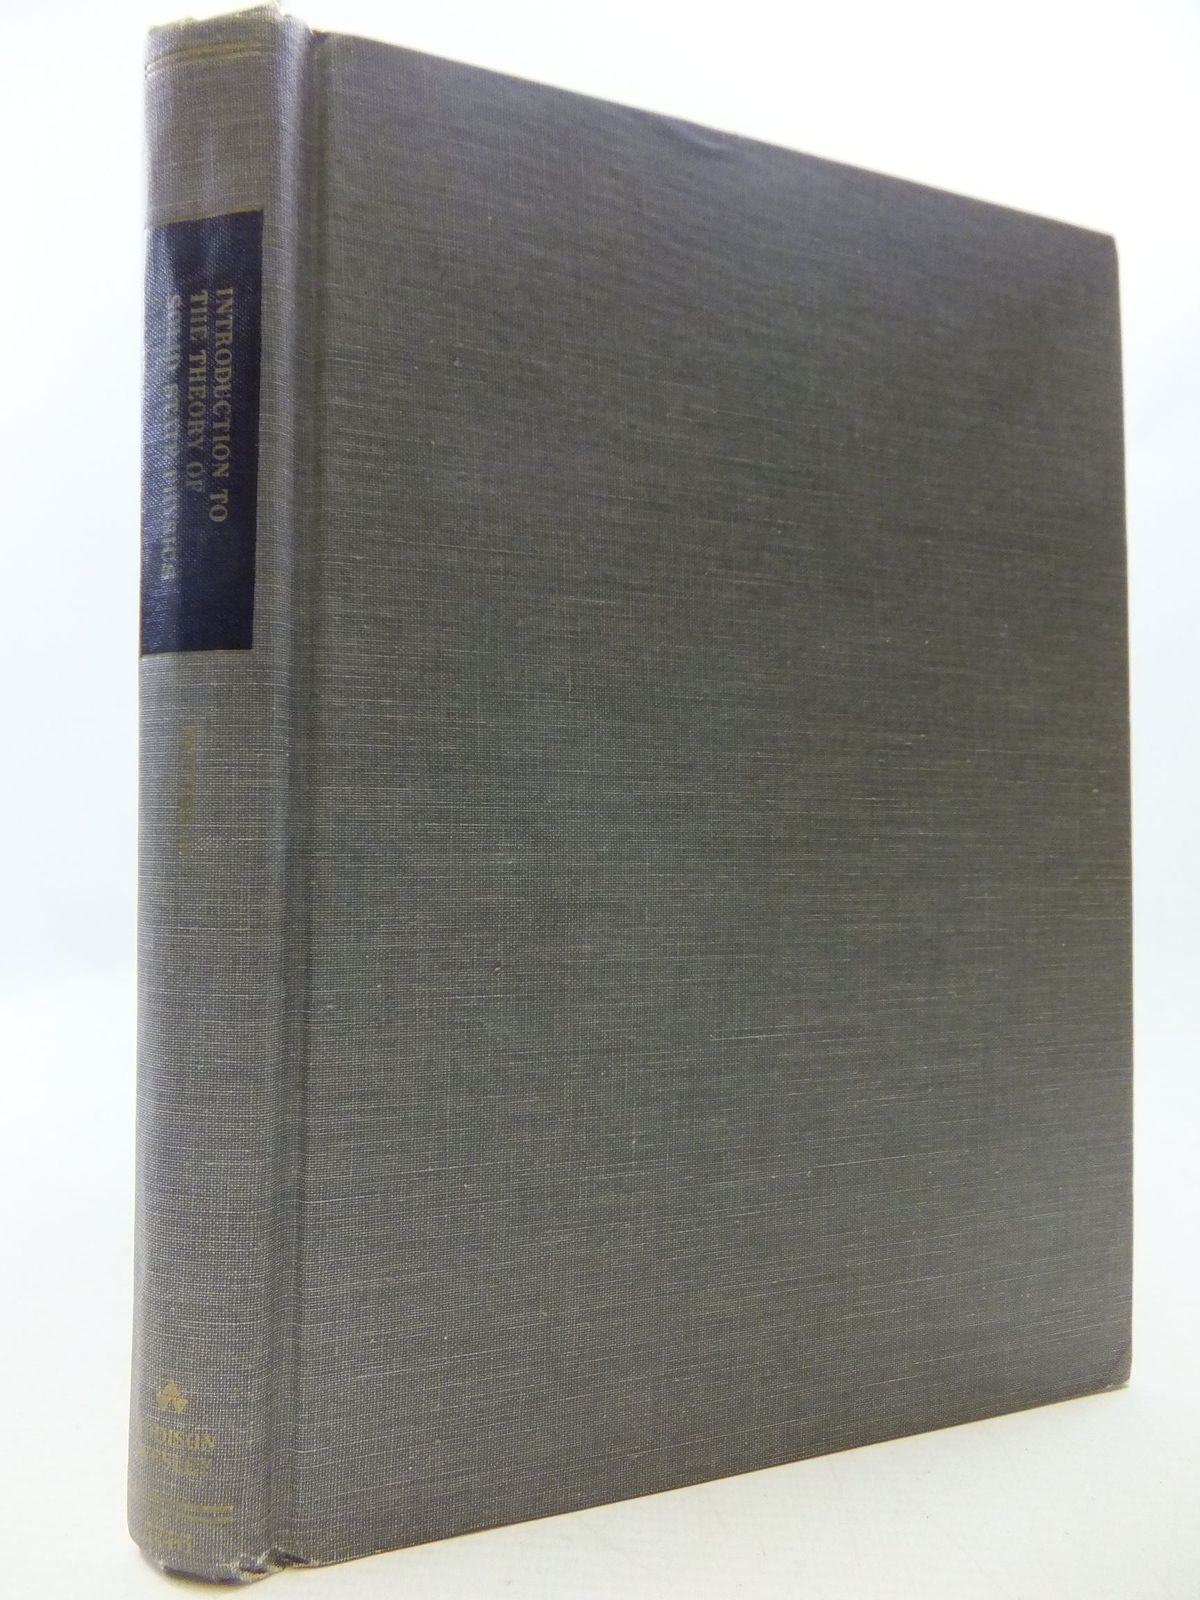 Photo of INTRODUCTION TO THE THEORY OF SOLID STATE PHYSICS written by Patterson, James D. published by Addison-Wesley (STOCK CODE: 1709328)  for sale by Stella & Rose's Books